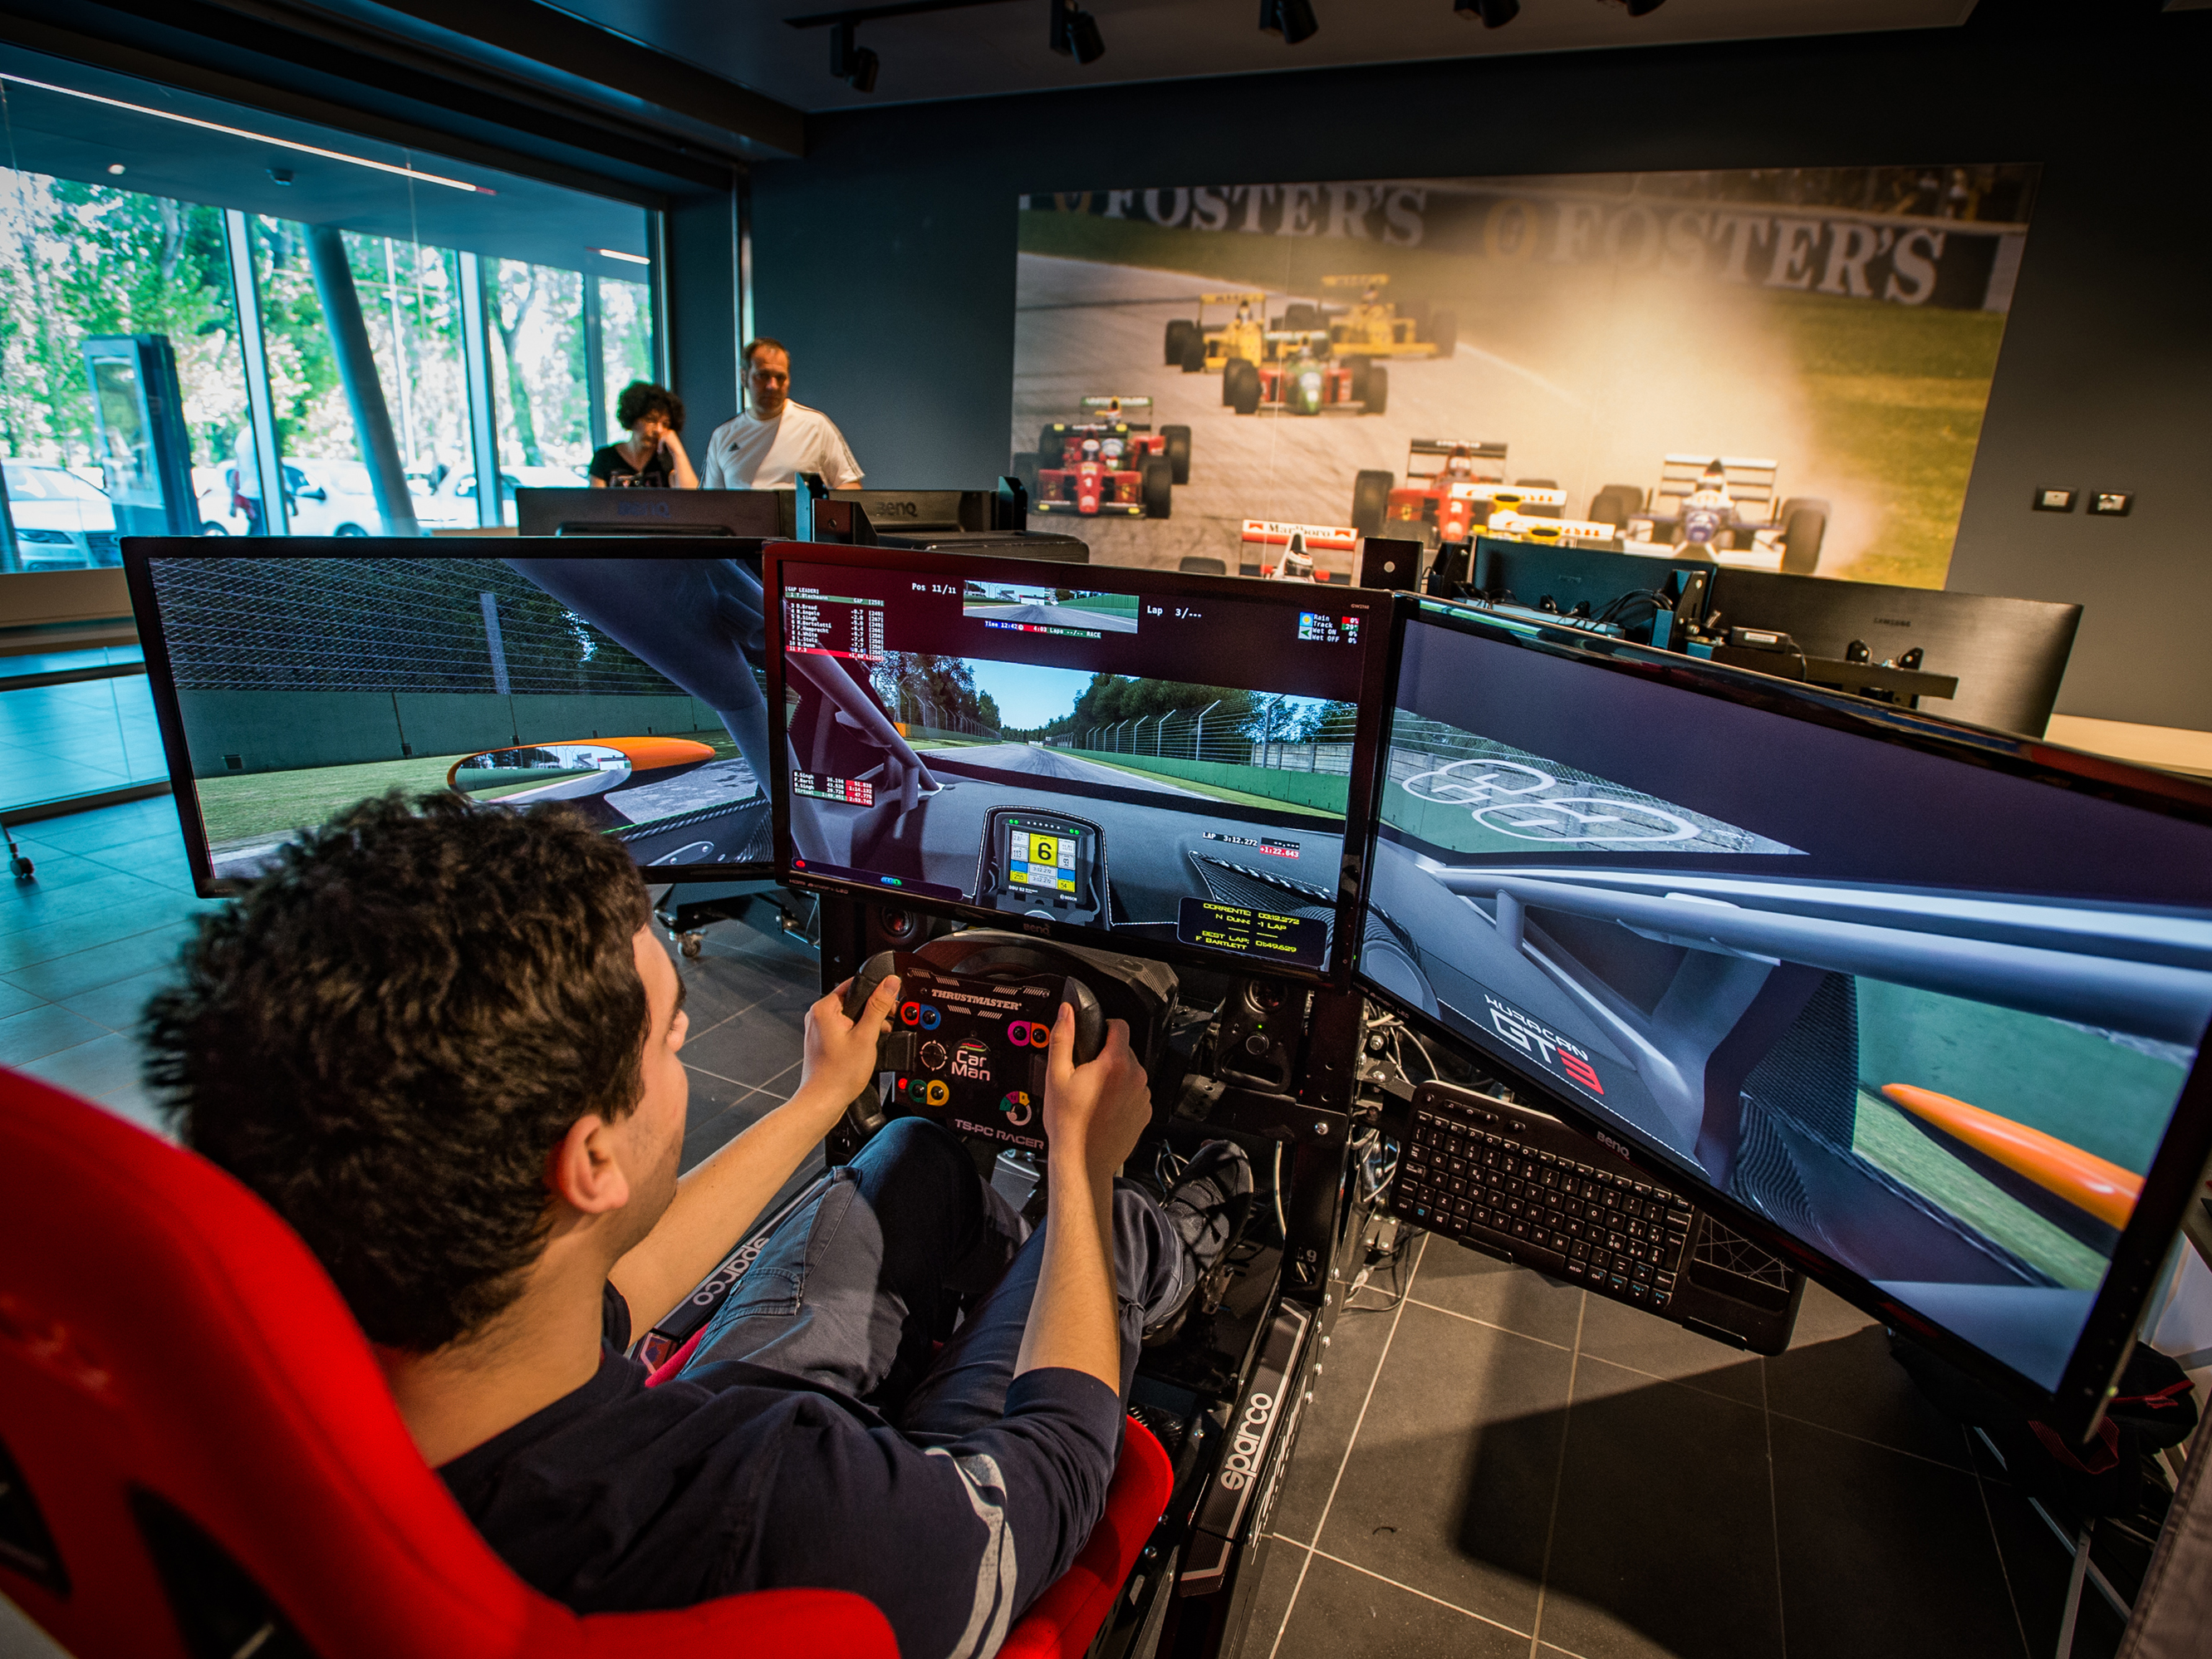 F1 SIMULATORS - Sim Speed Room | IF Imola Faenza Tourism